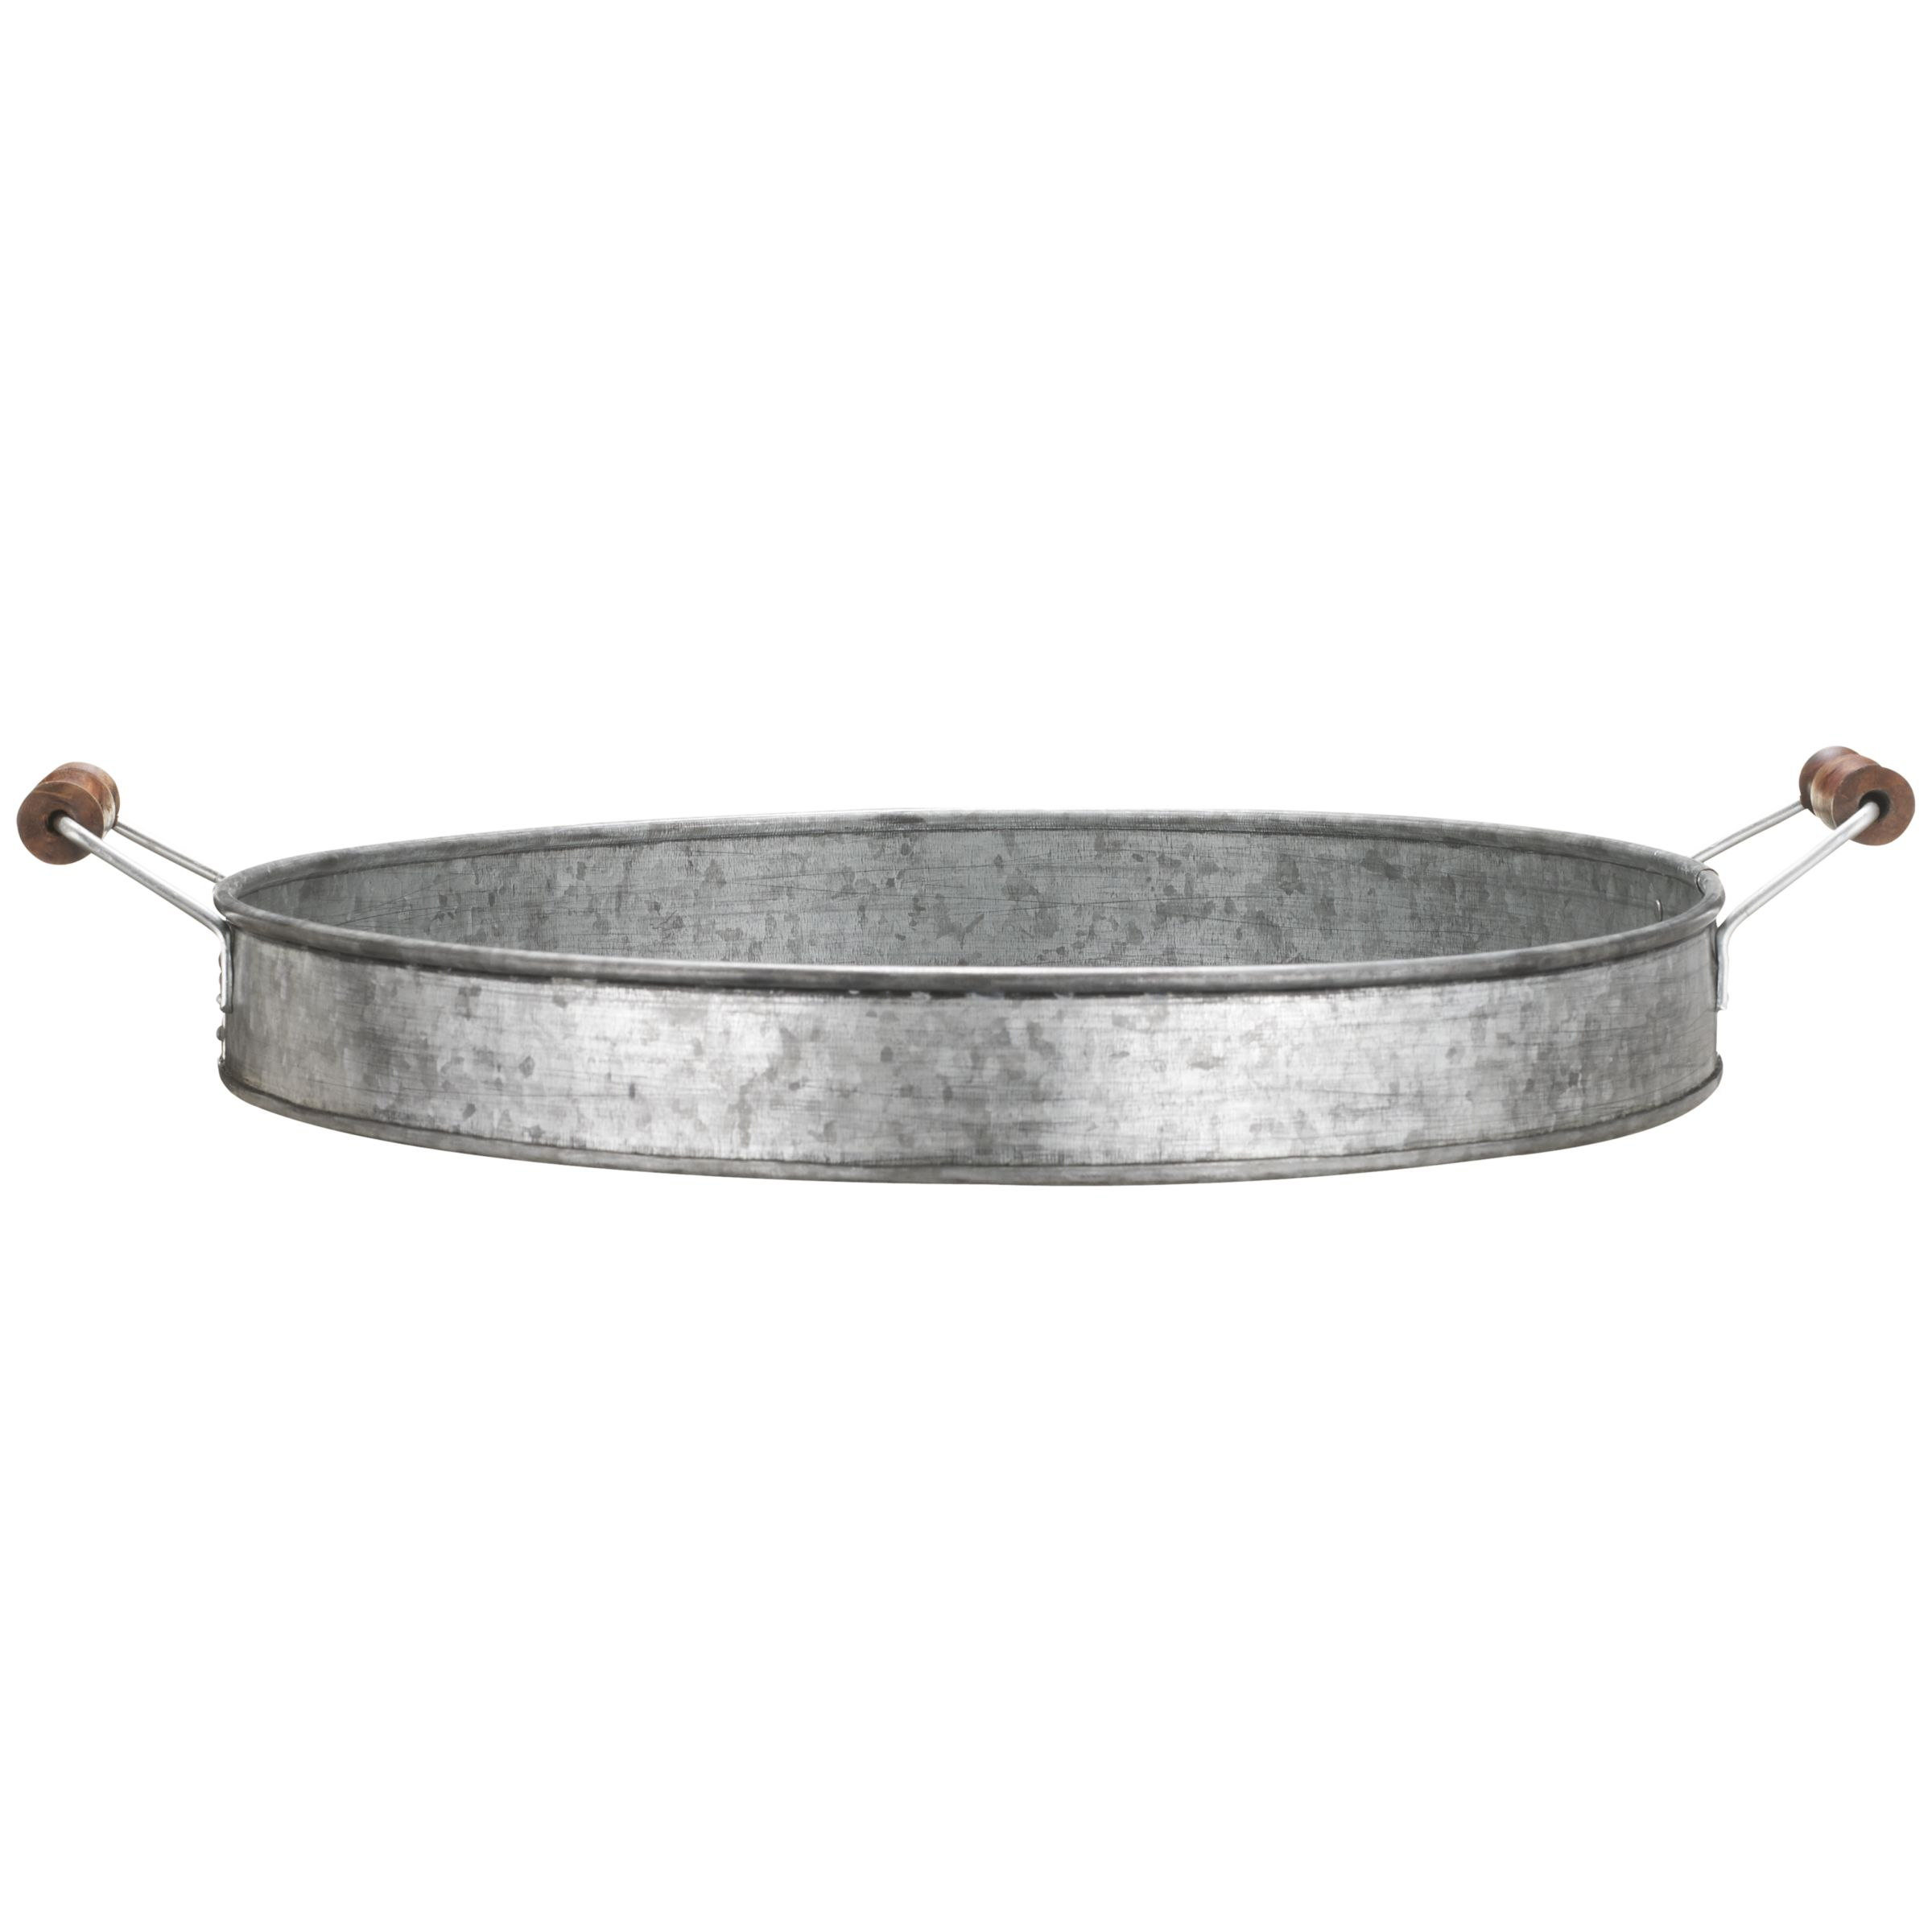 John Lewis Galvanised Tray with Wooden Handles